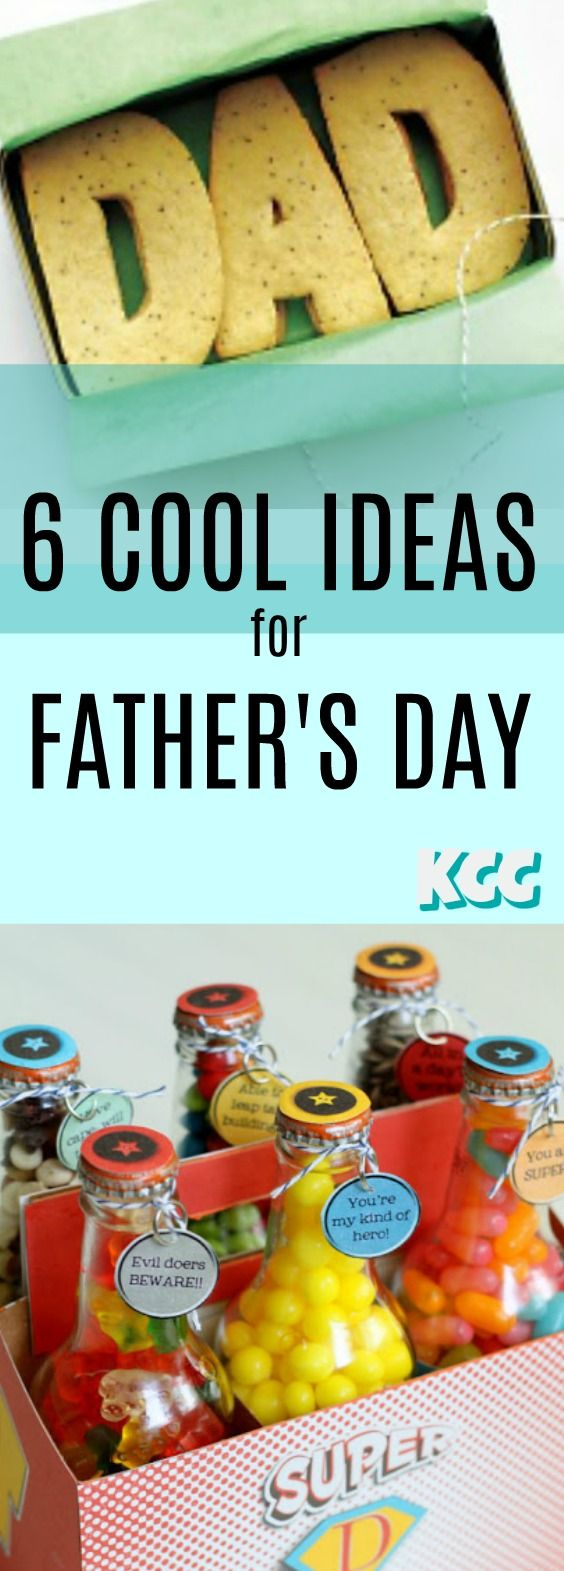 Cool Father's Day Gift Ideas for Dad! #kidscreativechaos